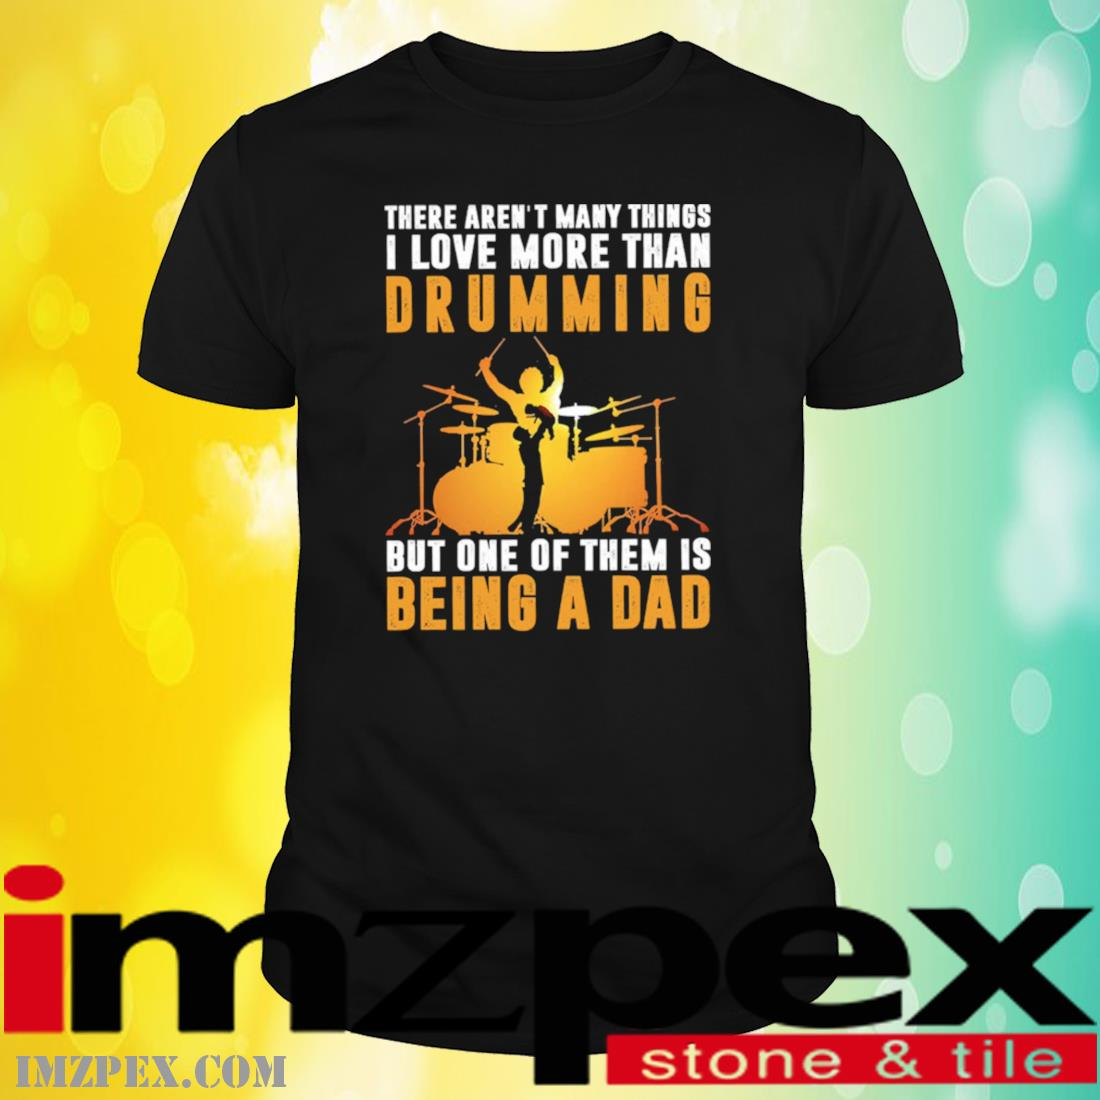 There Aren't Many Things I Love More Than Drumming But One Of Them Is Being A Dad Shirt